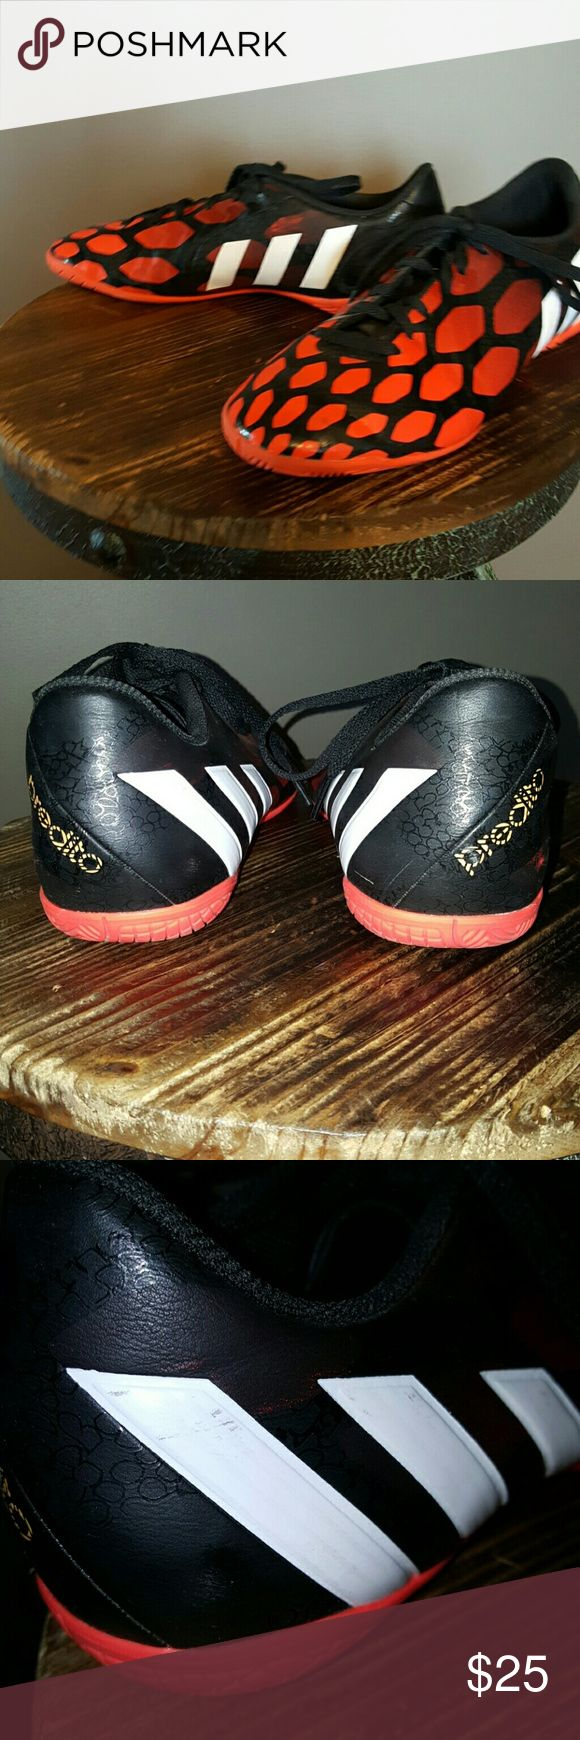 Adidas Predito Indoor Soccer Shoes Mens indoor soccer shoes, only worn for 1 indoor session.  Few minor scuffs that are hardly noticeable but still in great condition. Adidas Shoes